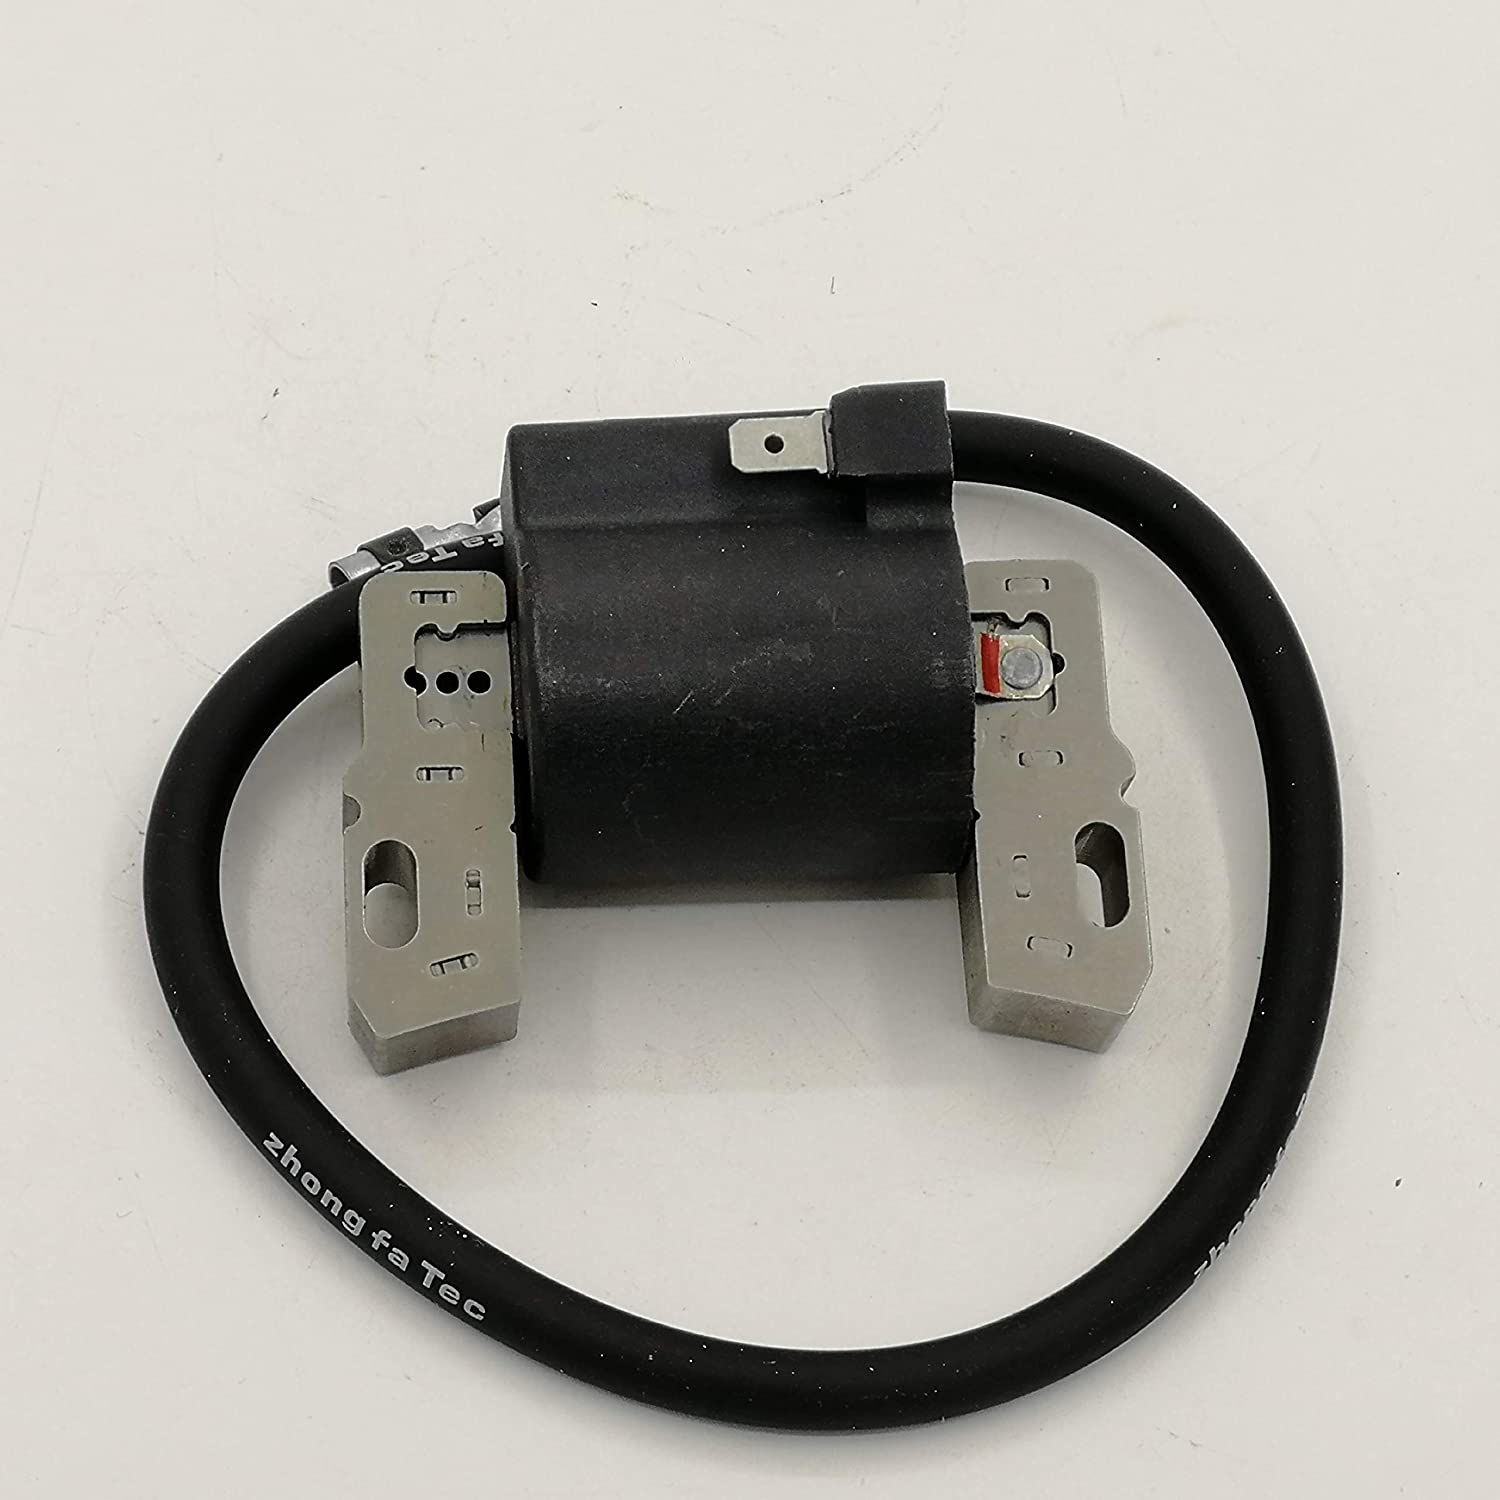 Ignition Coil Module Spark Plug for Briggs & Stratton 591459 490586 495859 492341 690248 715231 Lawm Mower parts